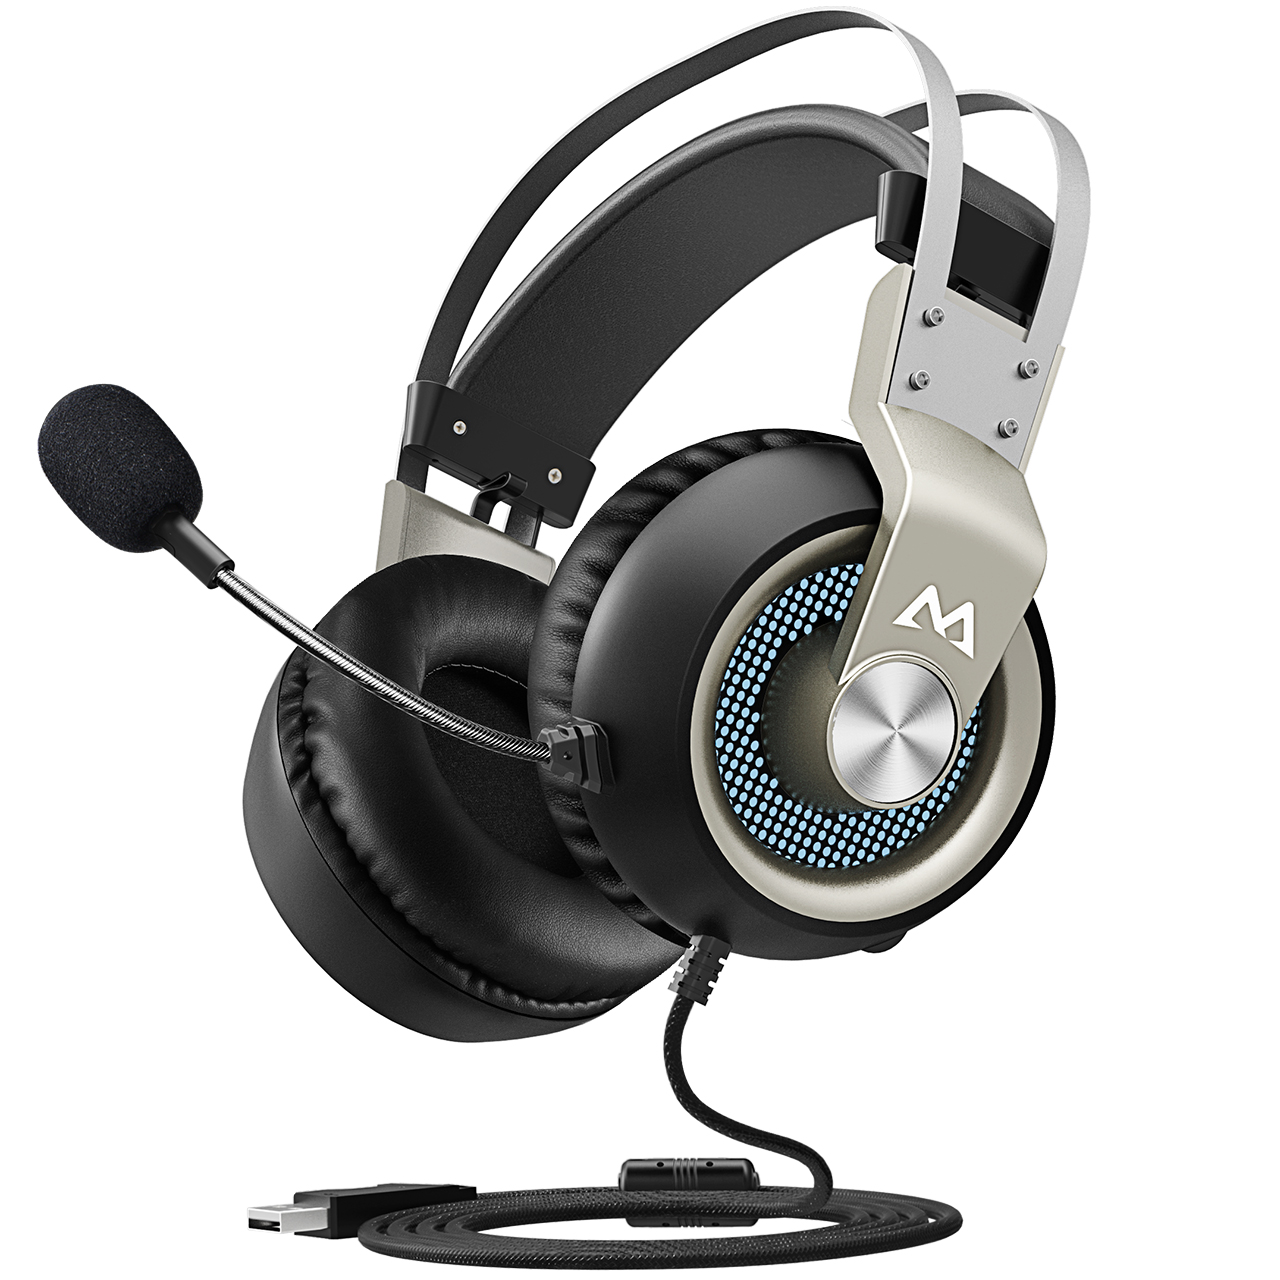 PS4 7.1 Surround Sound Gaming Headphones for FPS Game Mpow EG3 Gaming Headset LED Light Easy Volume//Mic Control for PC Stereo Over-Ear USB Computer Headset with Noise Cancelling Mic 50mm Driver